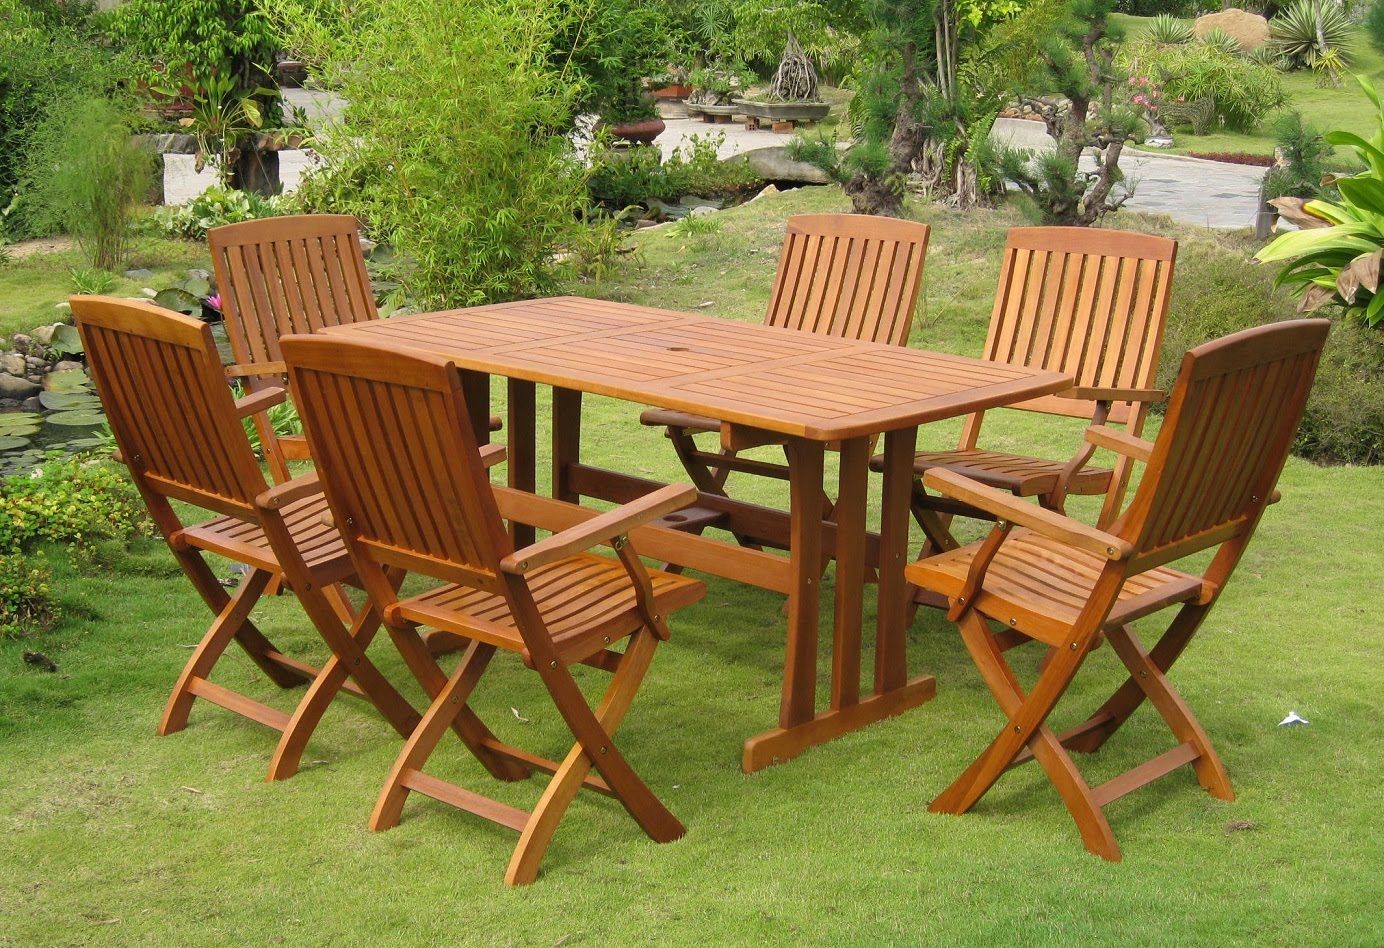 Enhance The Beauty Of Your Home With Teak Garden Benches | Esellweb Blog